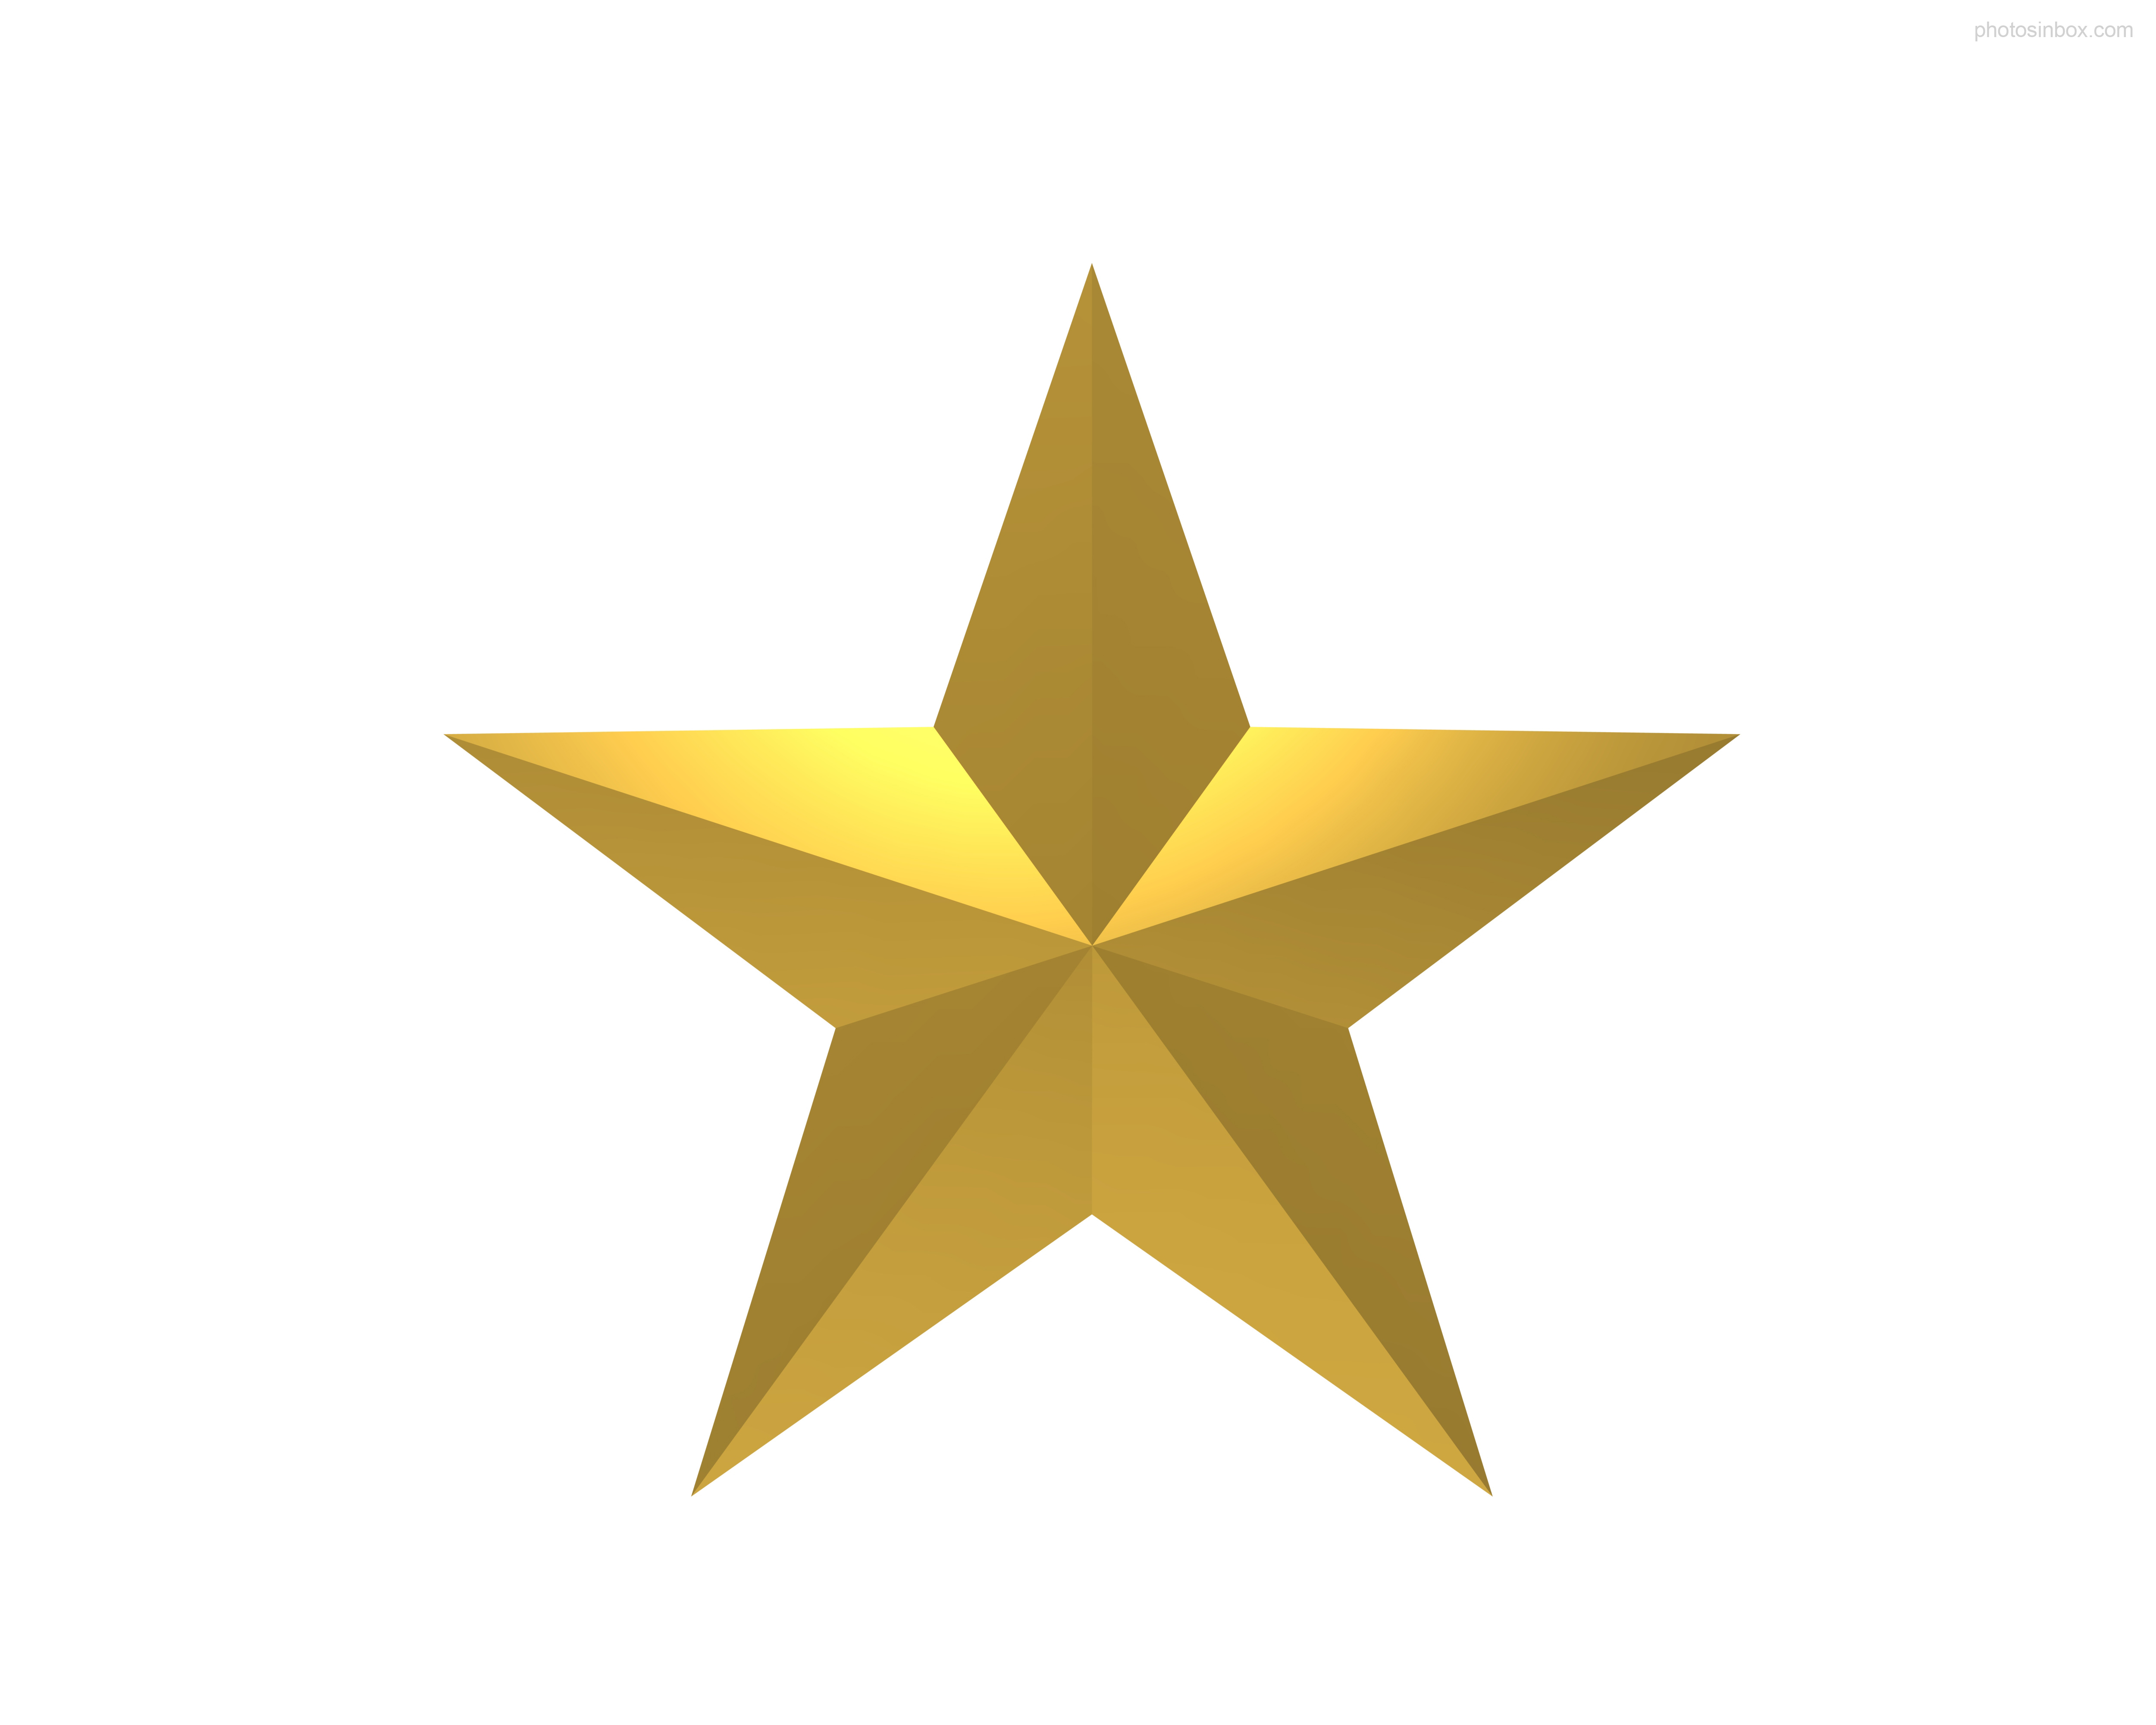 Gold star clipart transparent.